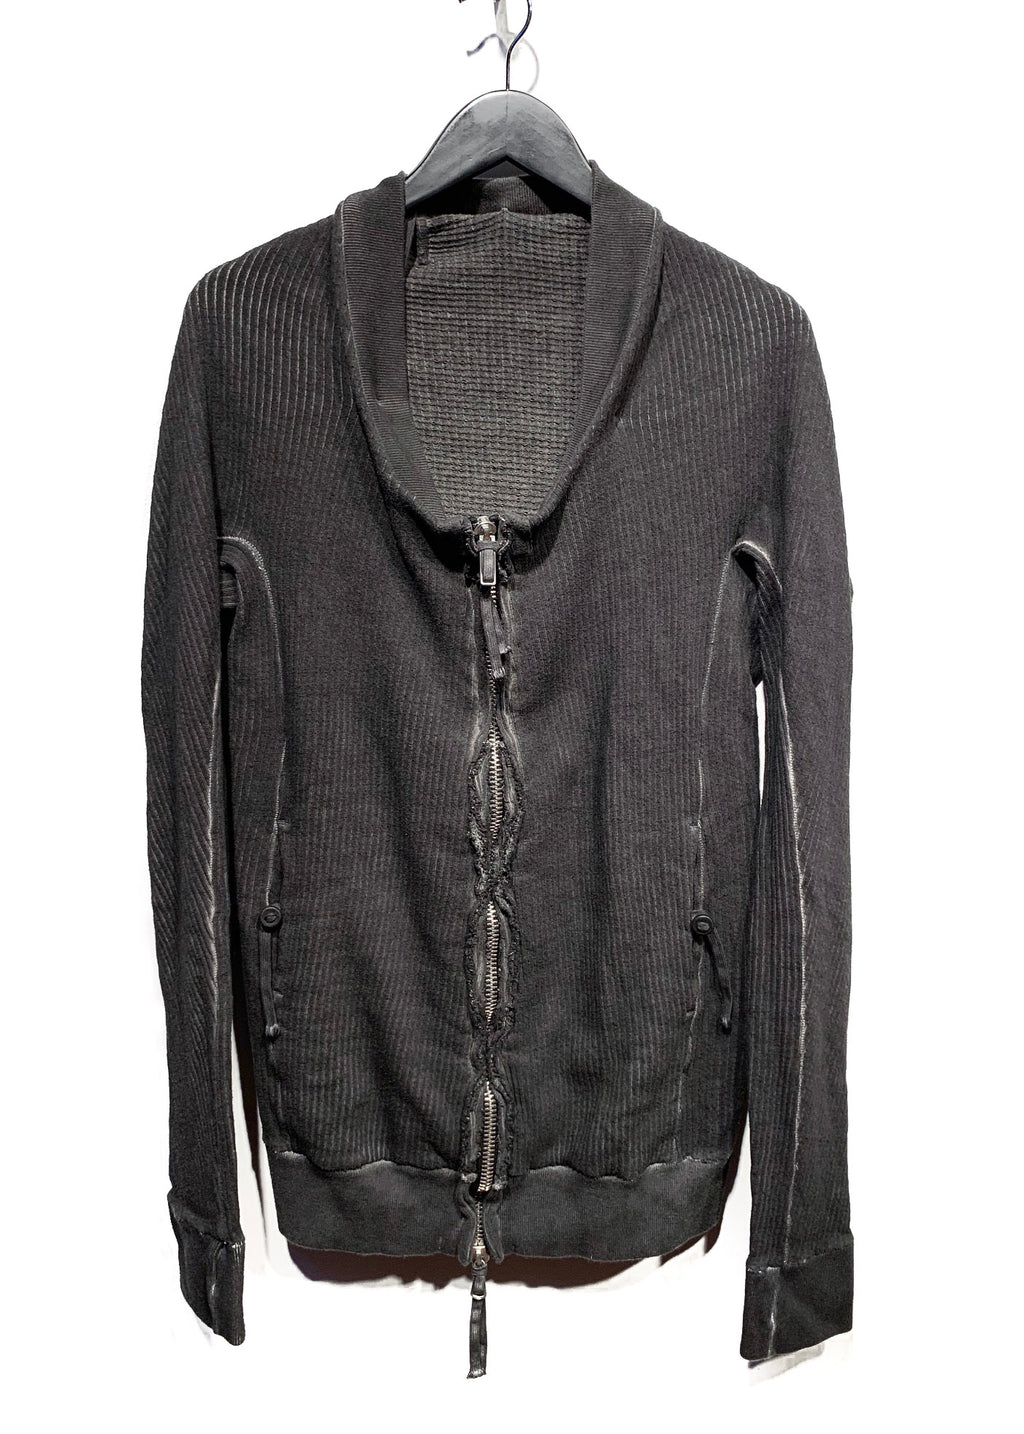 Boris Bidjan Saberi Grey Cotton Ribbed Zip-up Pocketed Sweater